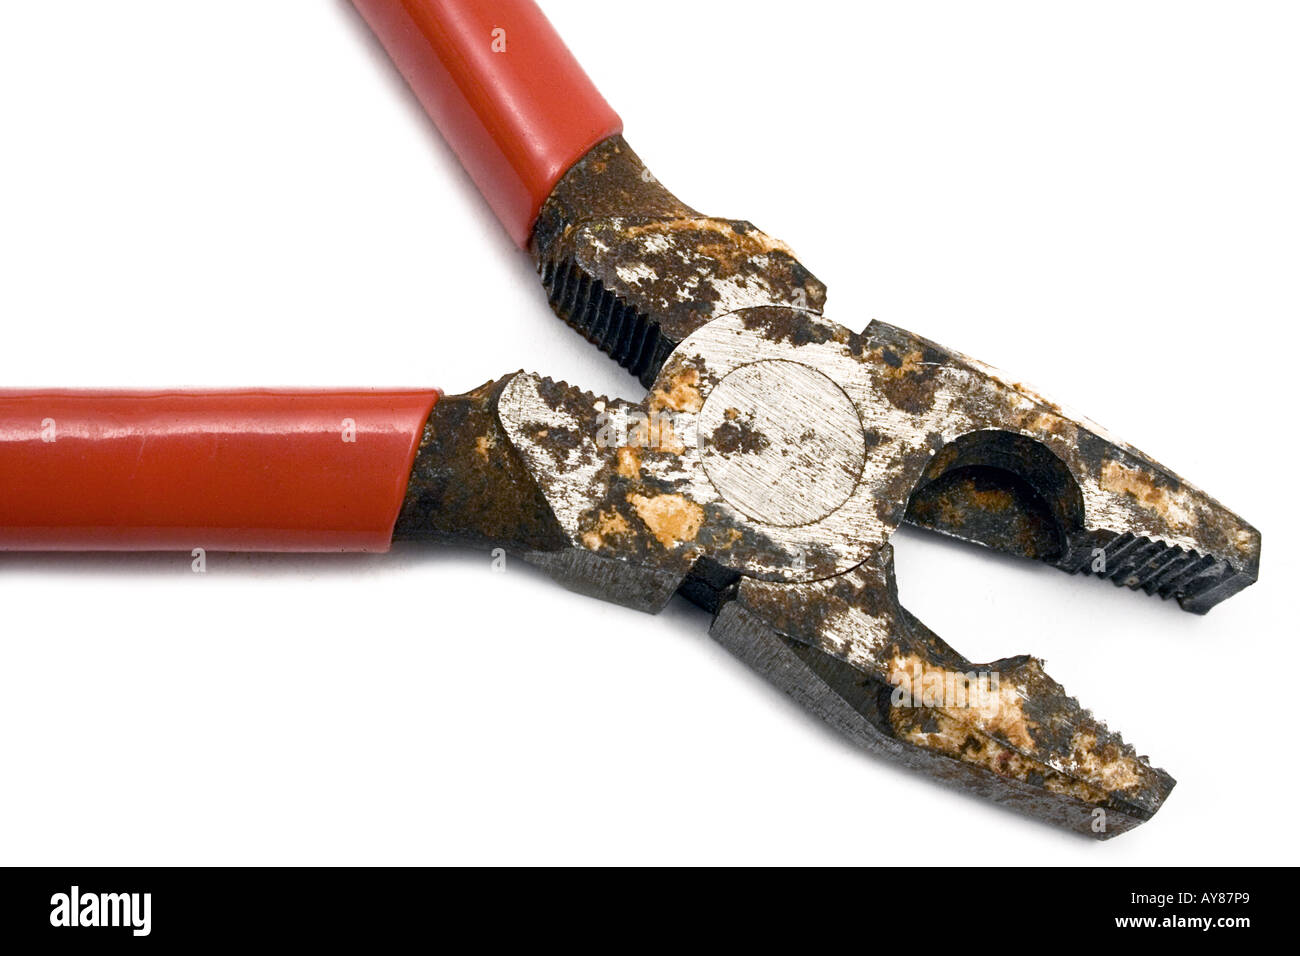 Corroded Pliers - Stock Image